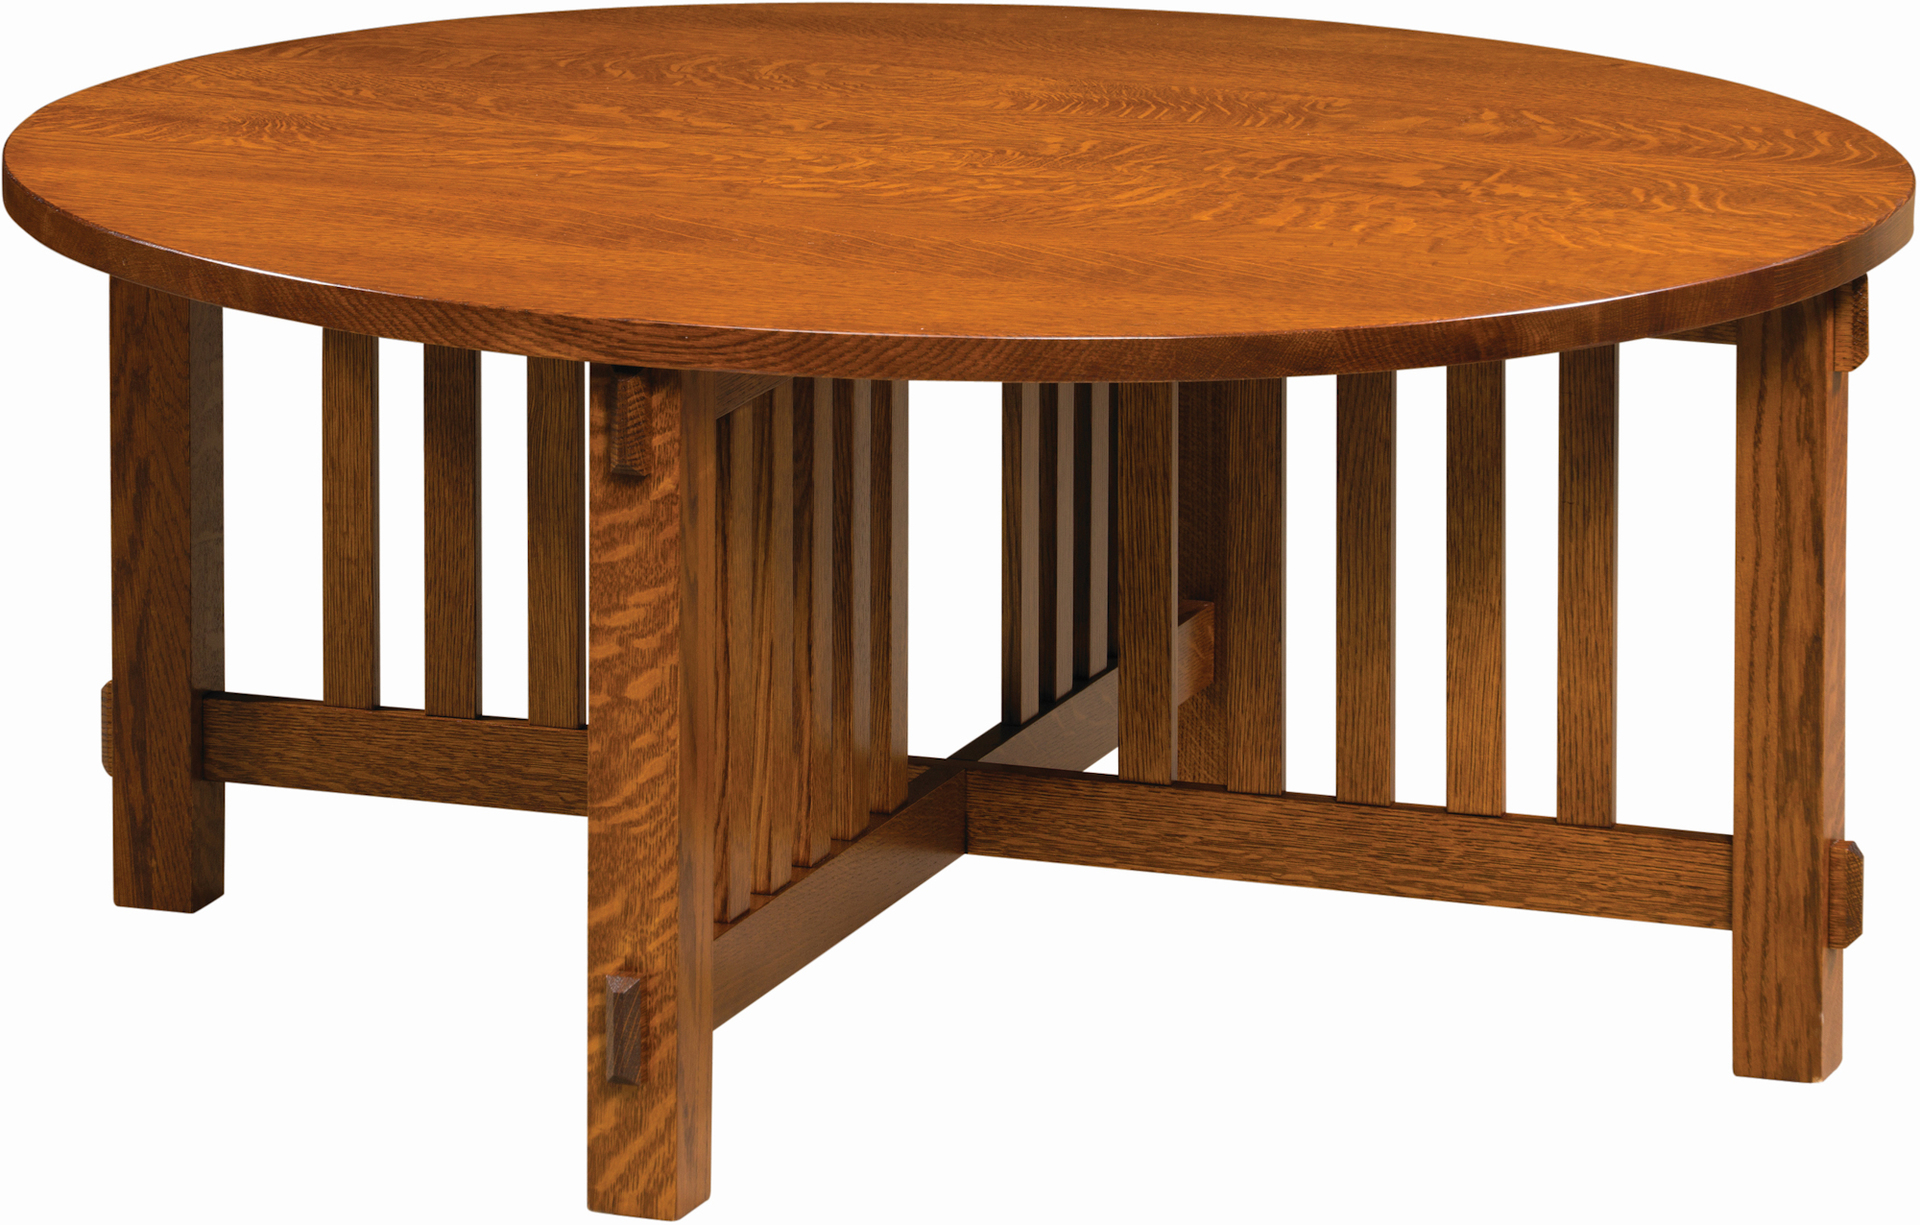 Mission Round Table.Rio Mission Round Coffee Table Amish Rio Mission Round Coffee Table